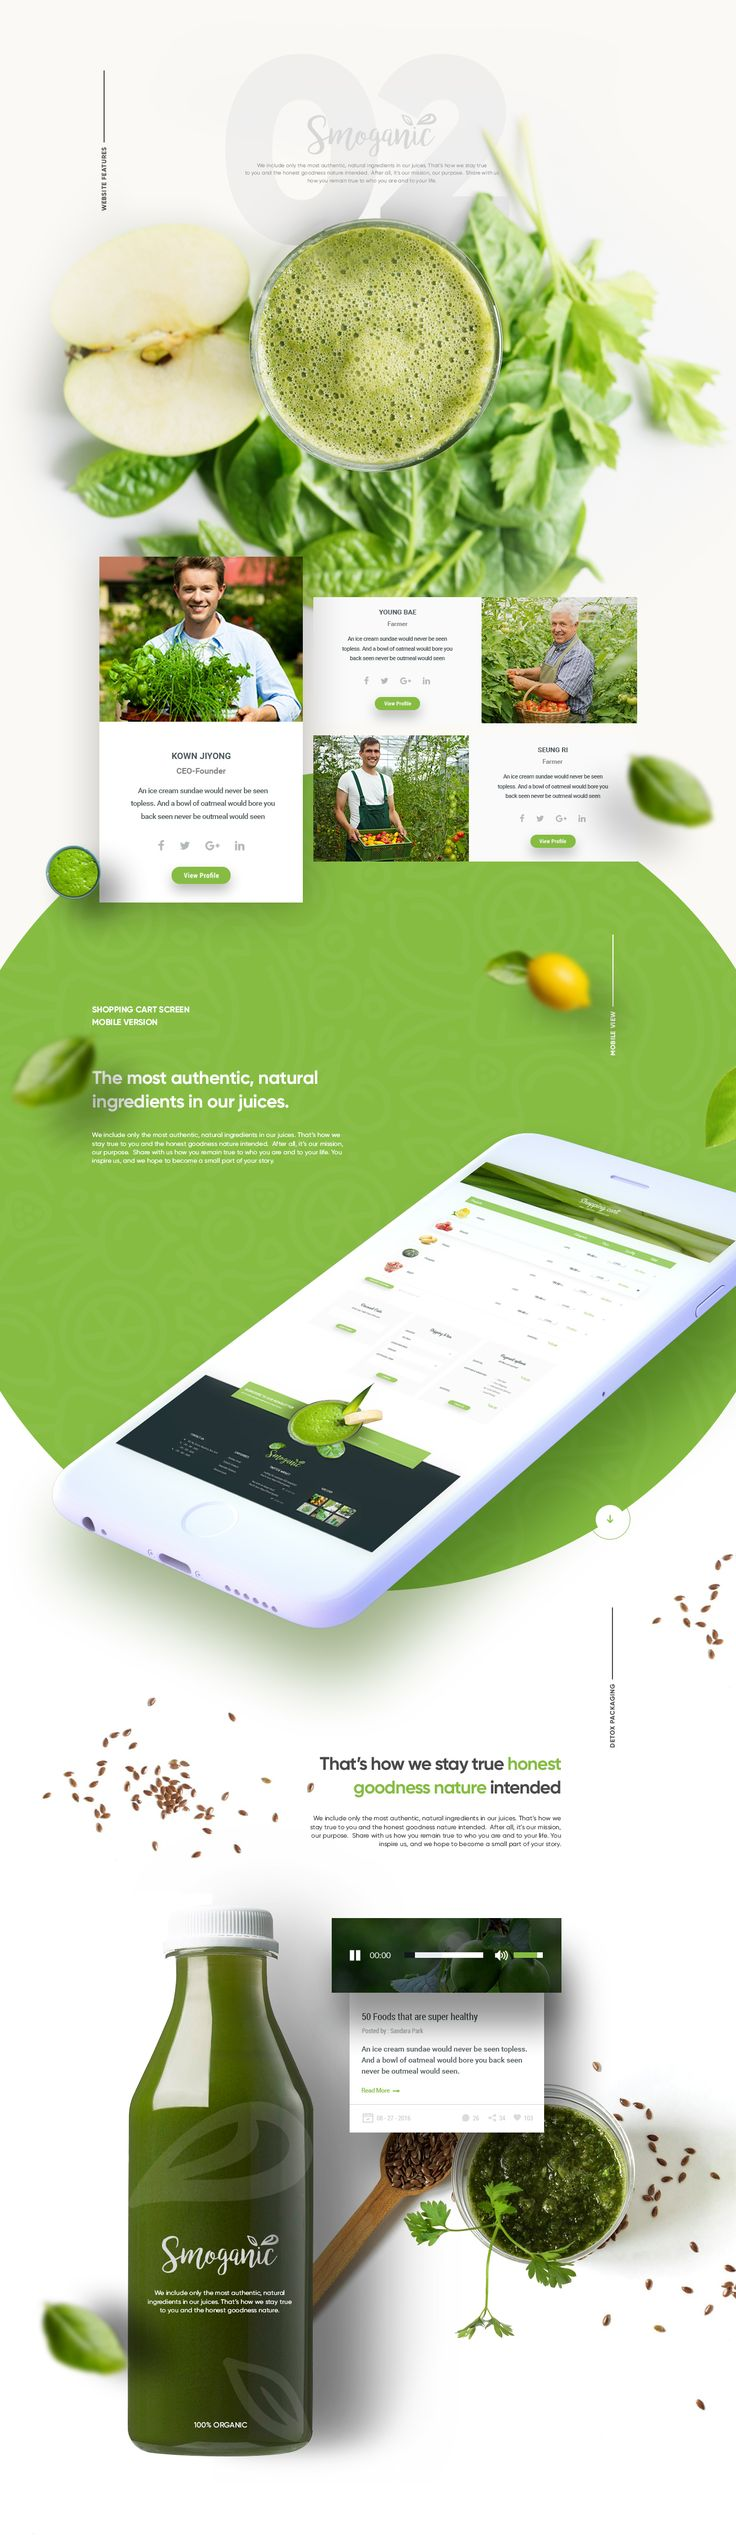 Smoganic website design, they provide most authentic, natural ingredients in their juices.